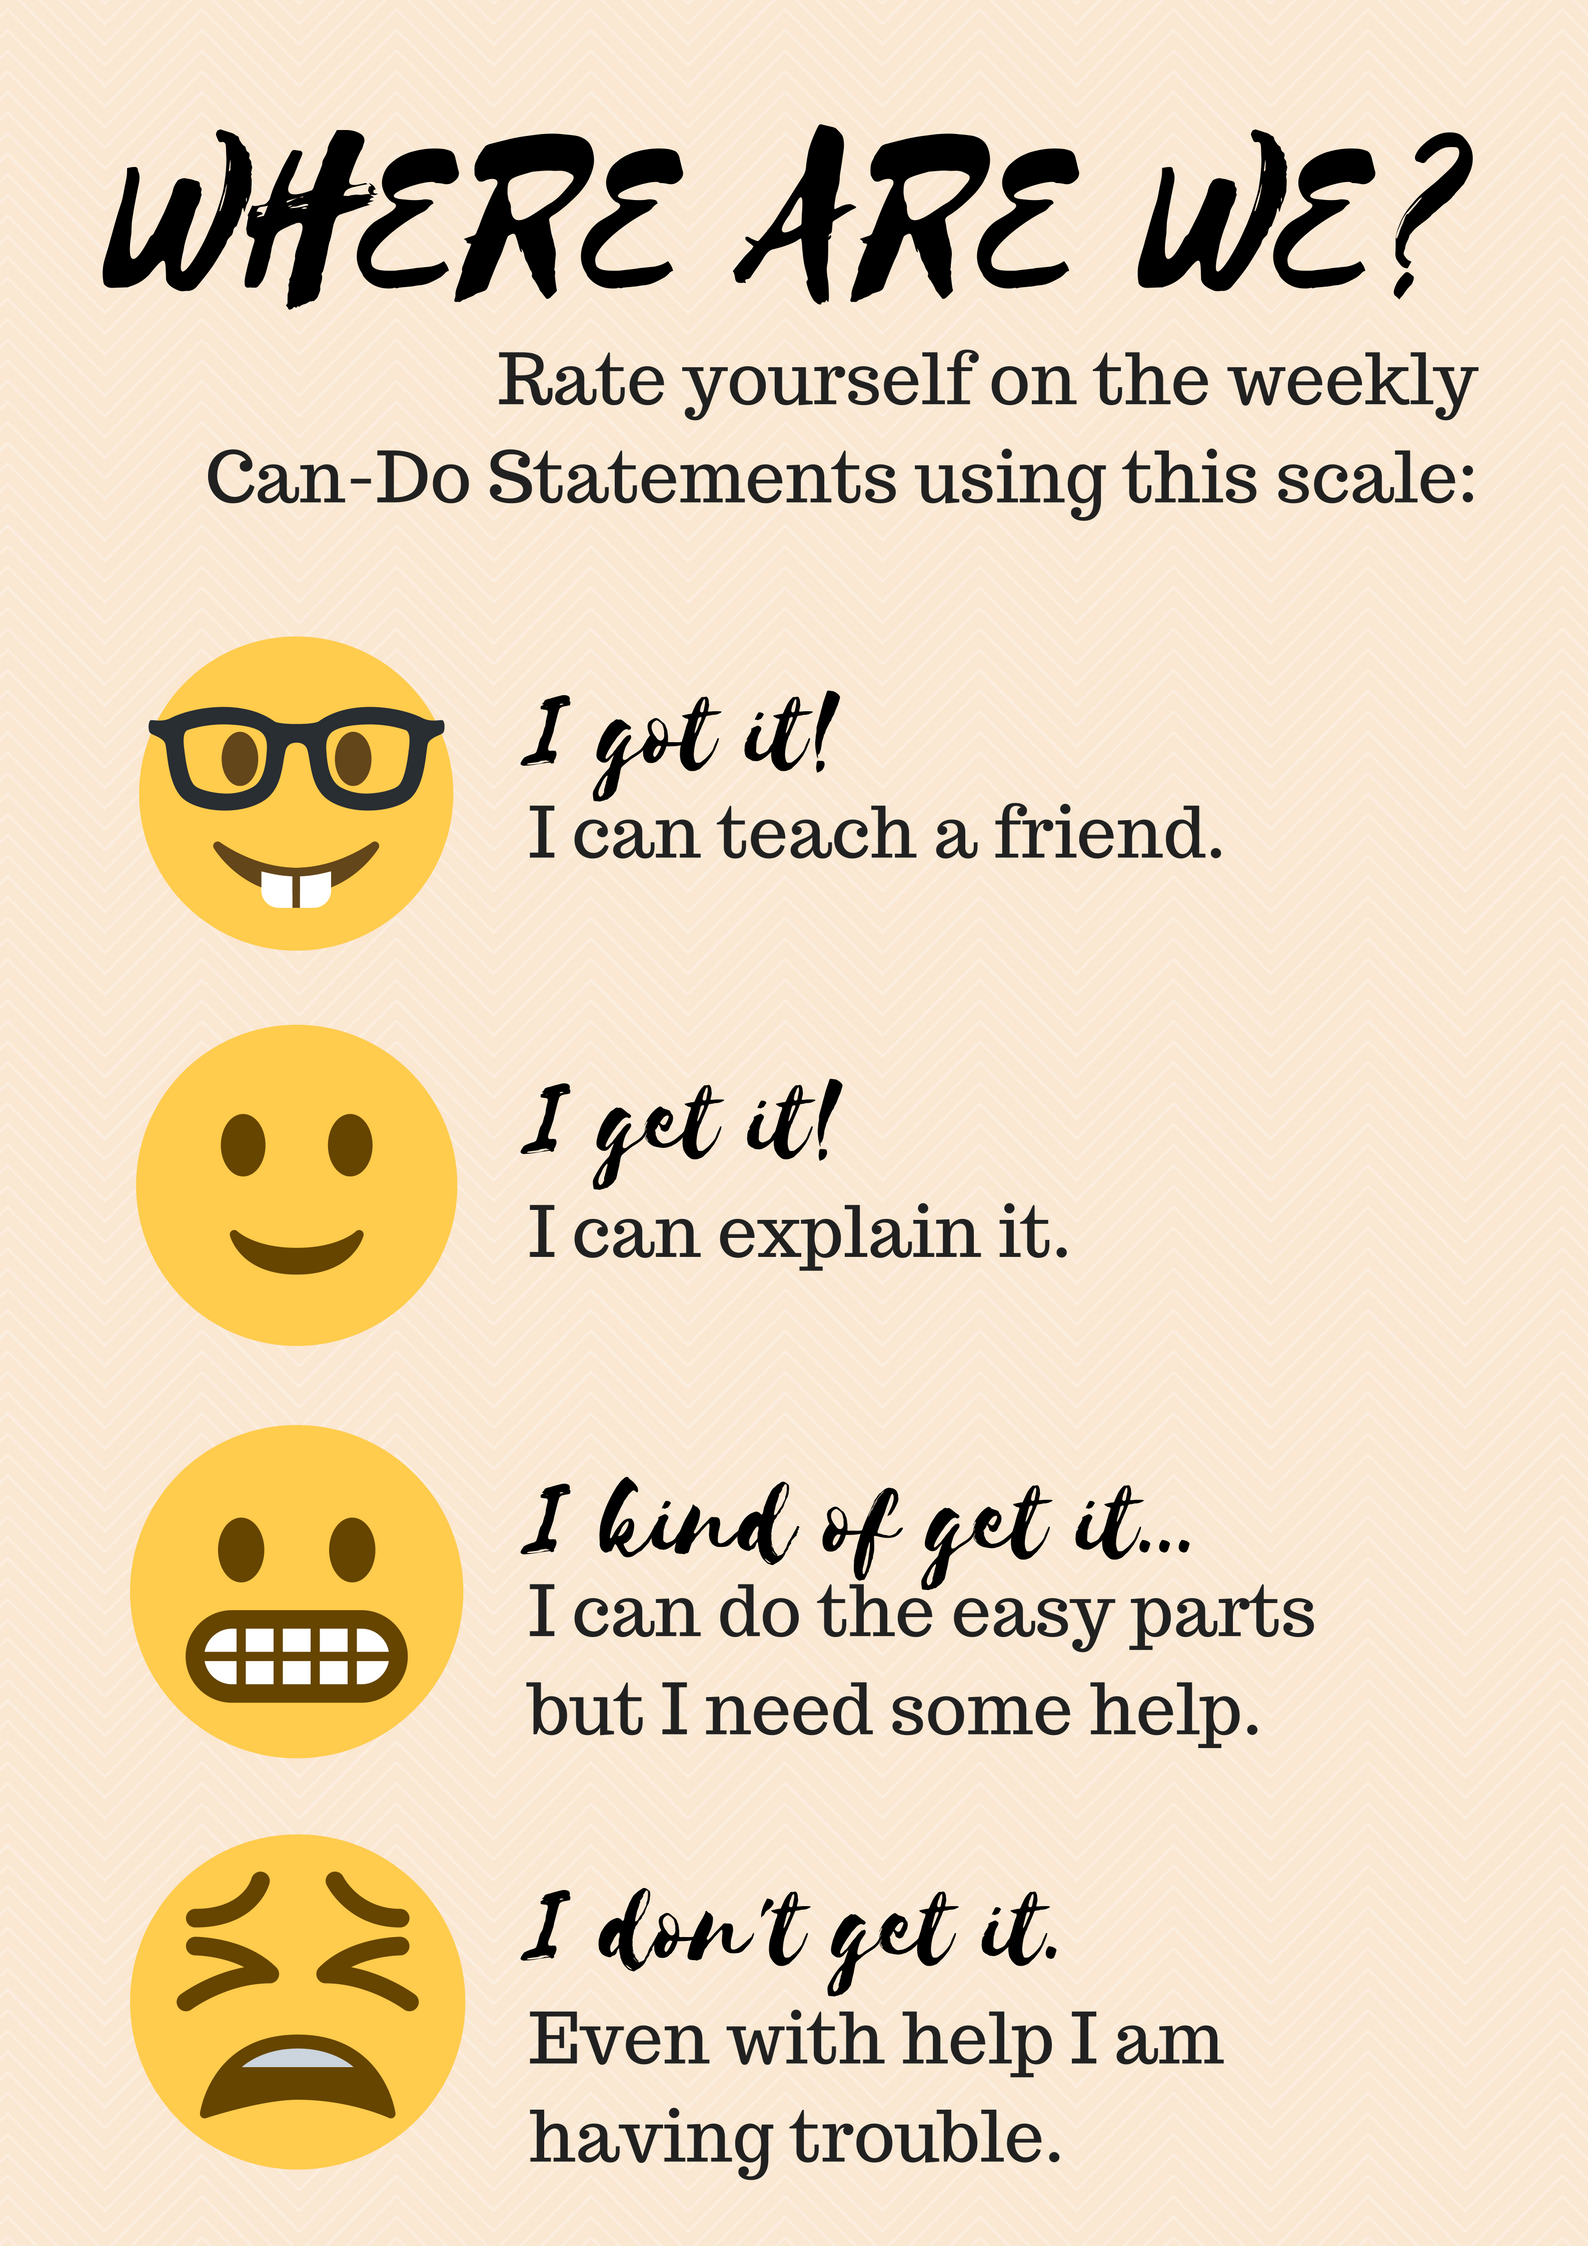 Where are we? Rate yourself on the weekly Can-Do Statements using this scale: I get it!, I got it!, I kind of get it..., I don't get it...